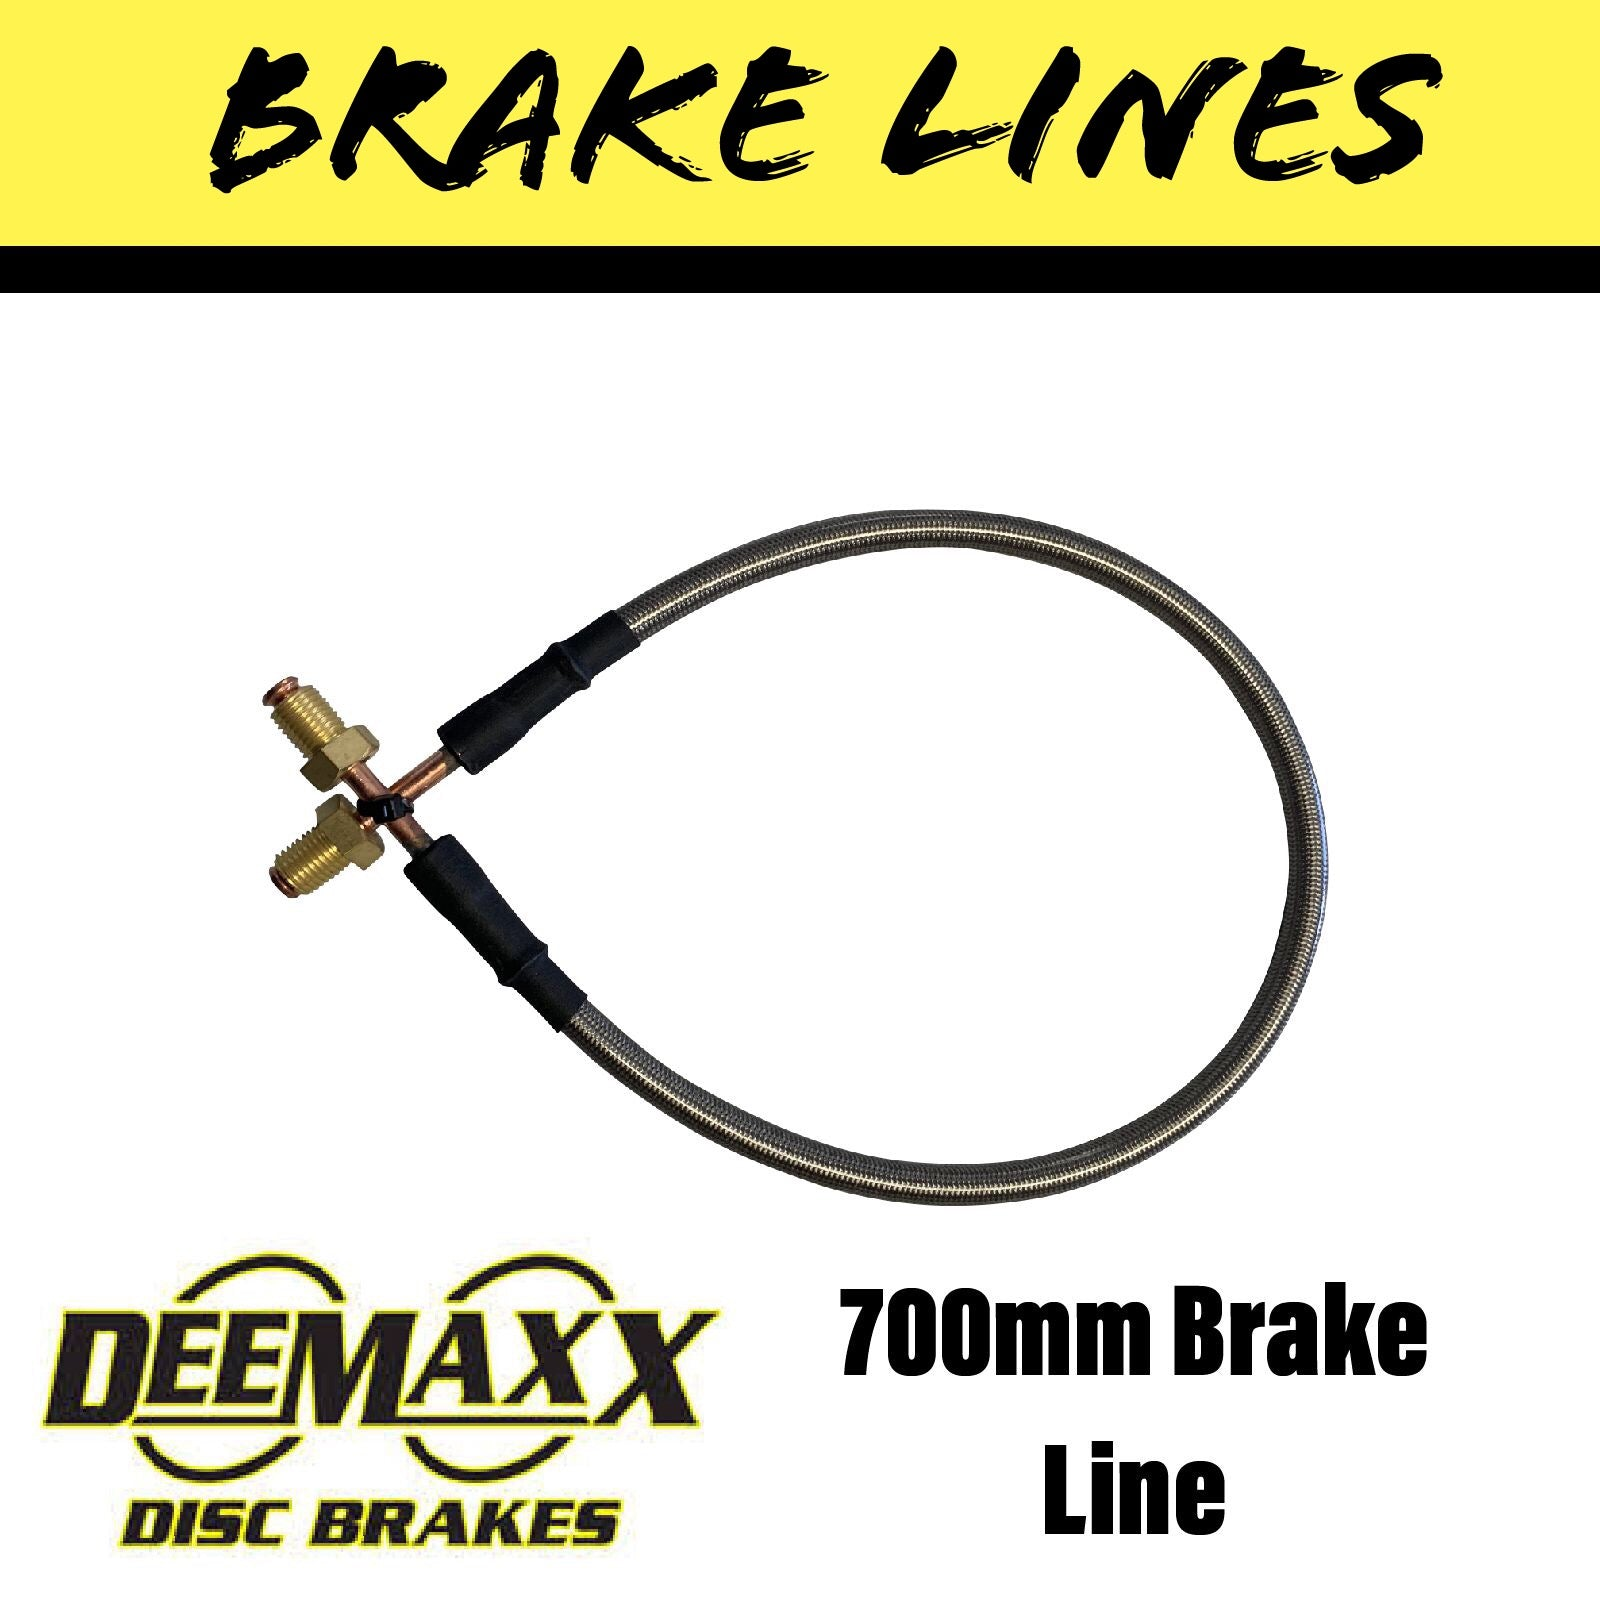 700MM FLEXIBLE STAINLESS STEEL Brake Line